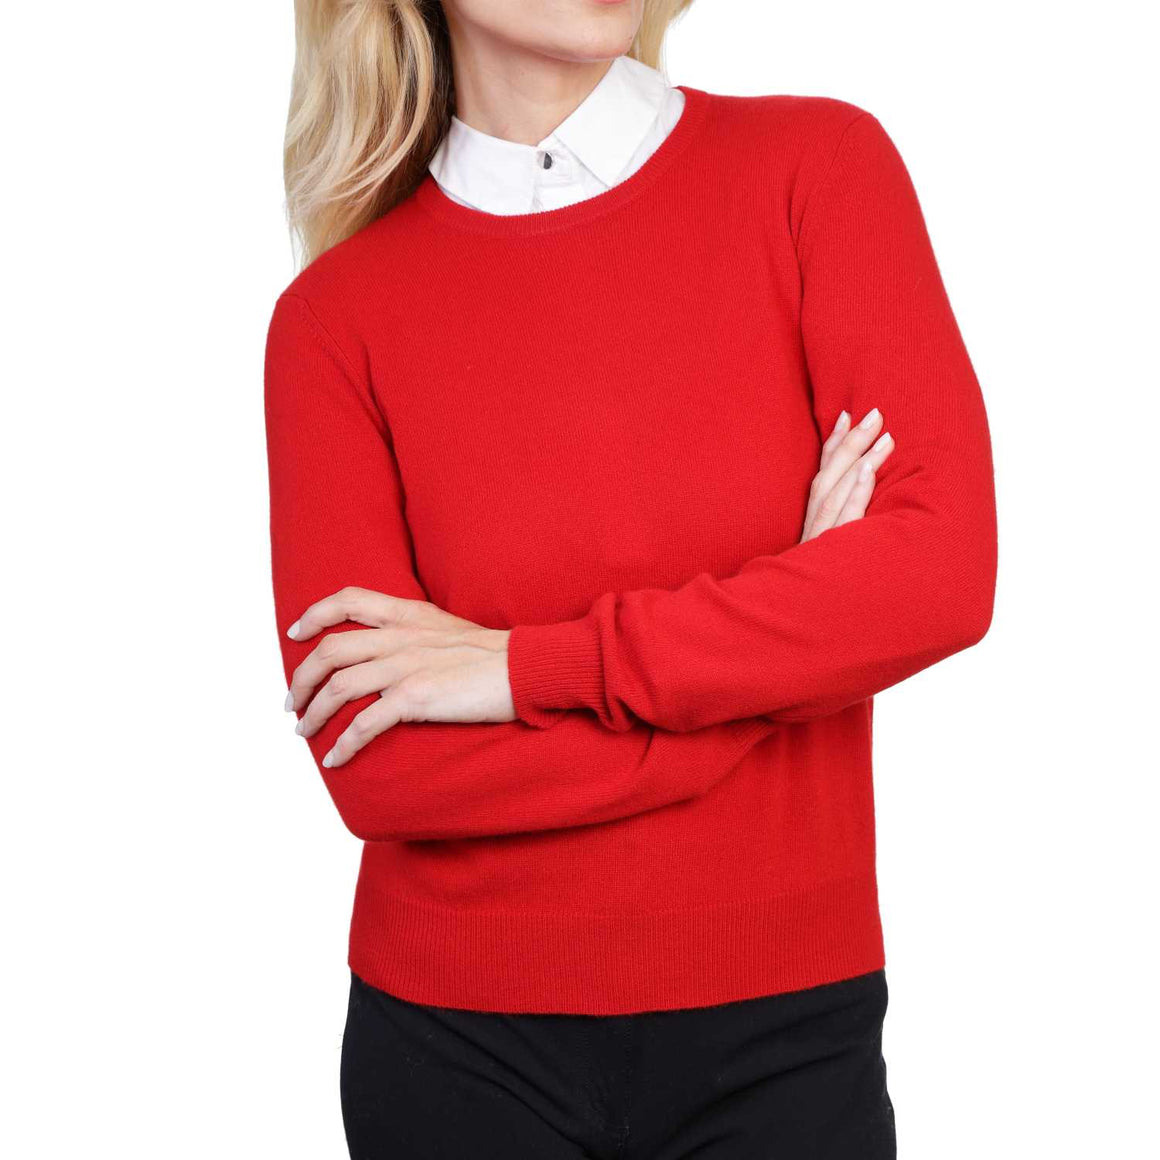 Ladies Red Cashmere Round Neck Sweater | Front | Shop at The Cashmere Choice | London